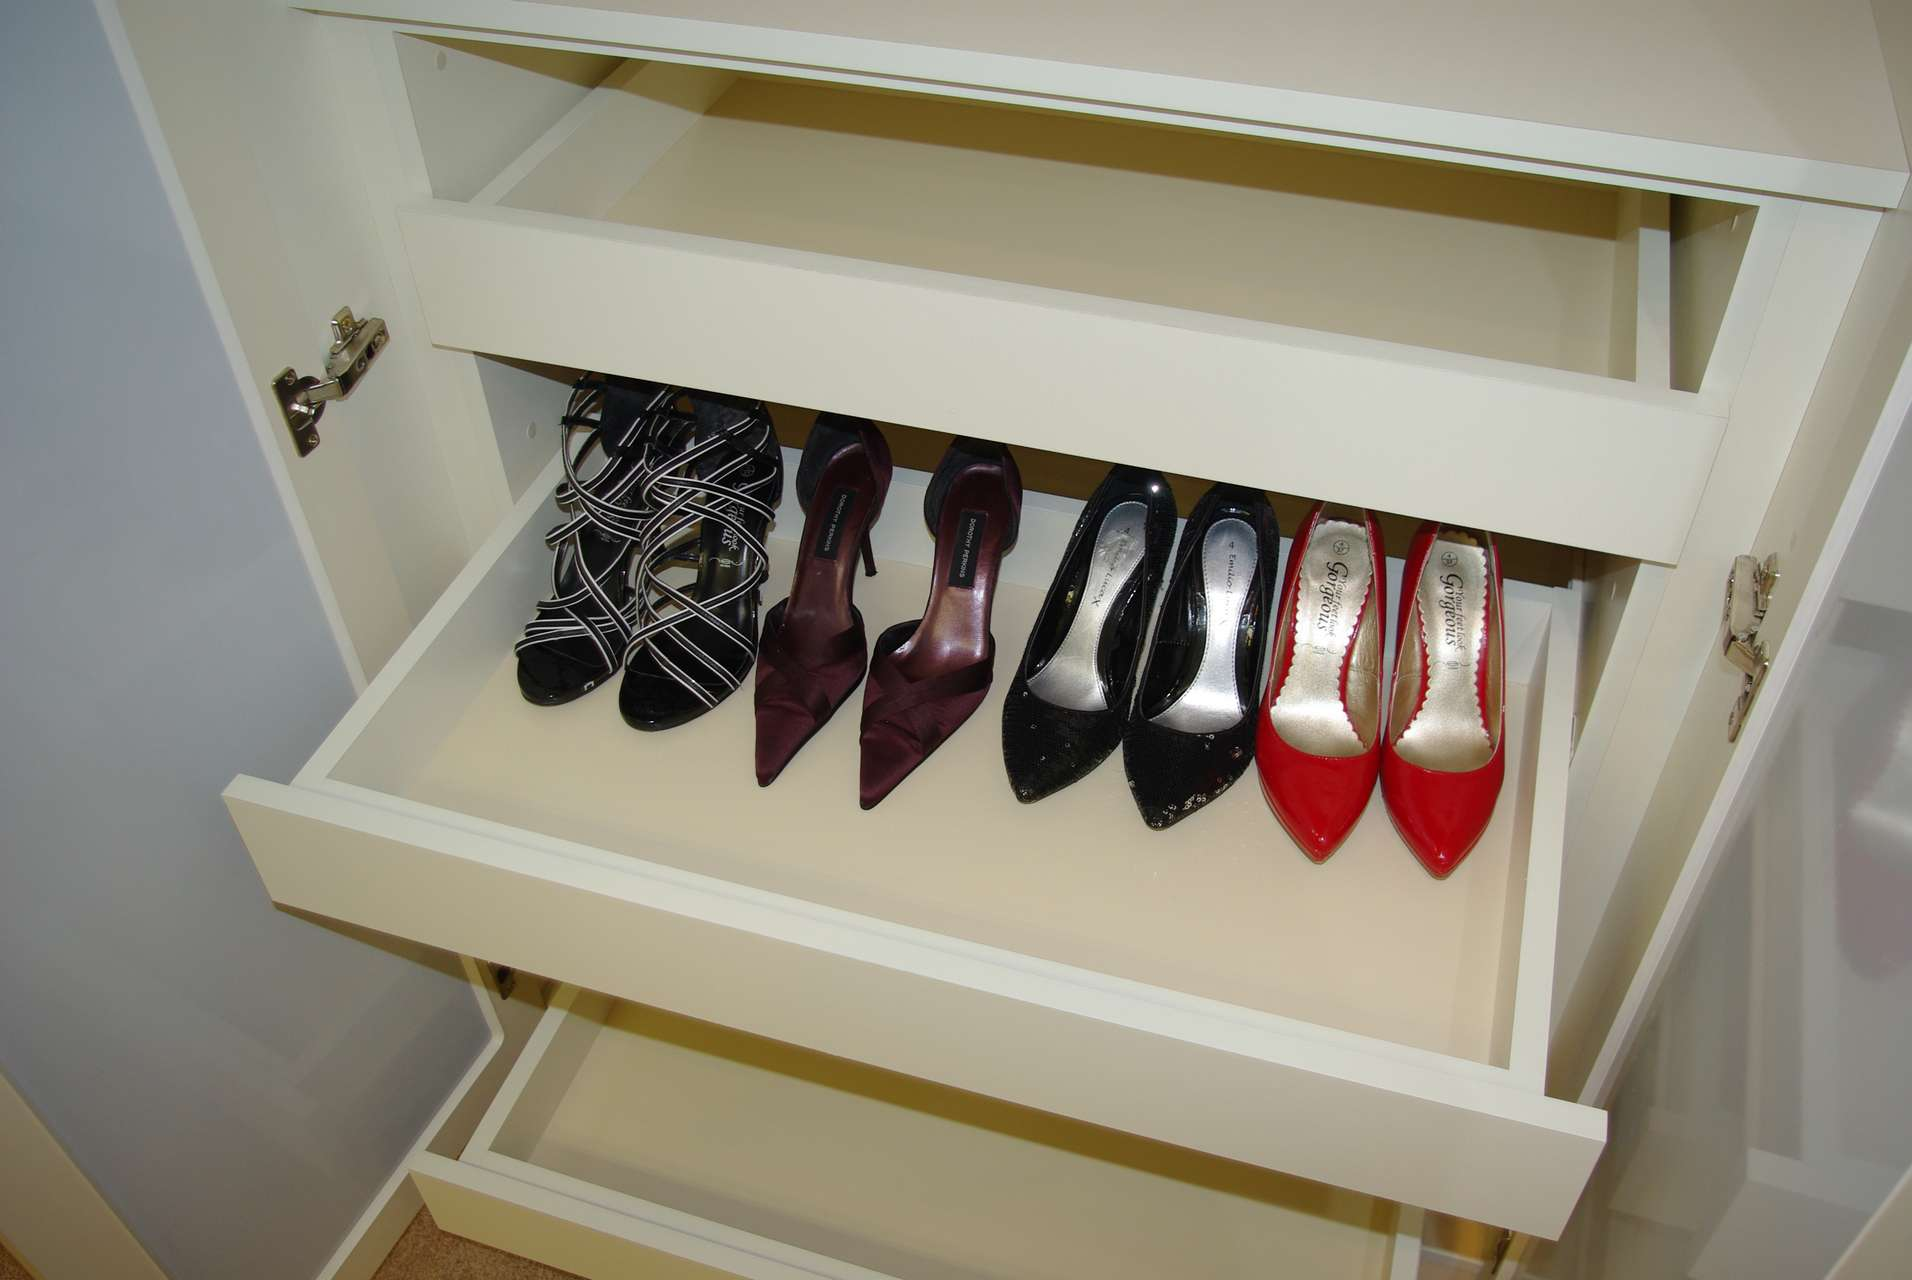 Built in drawers for shoes to tidy away your collection